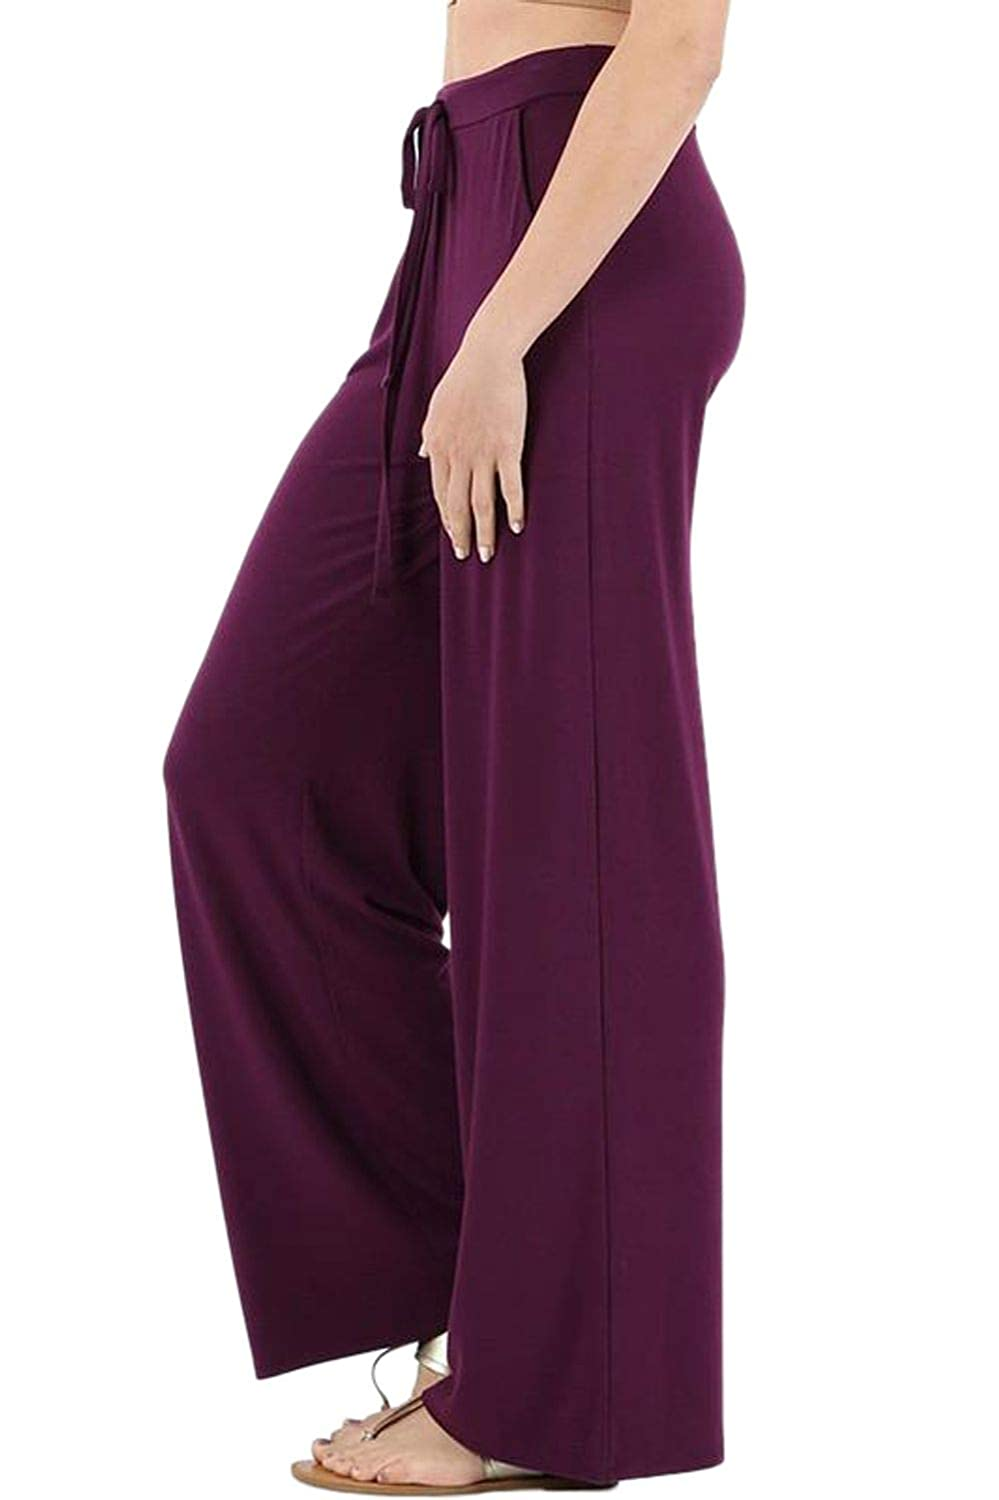 Sportoli Lounge Pants for Women Pajama Pants Loose Fit with Drawstring Waist and Pockets